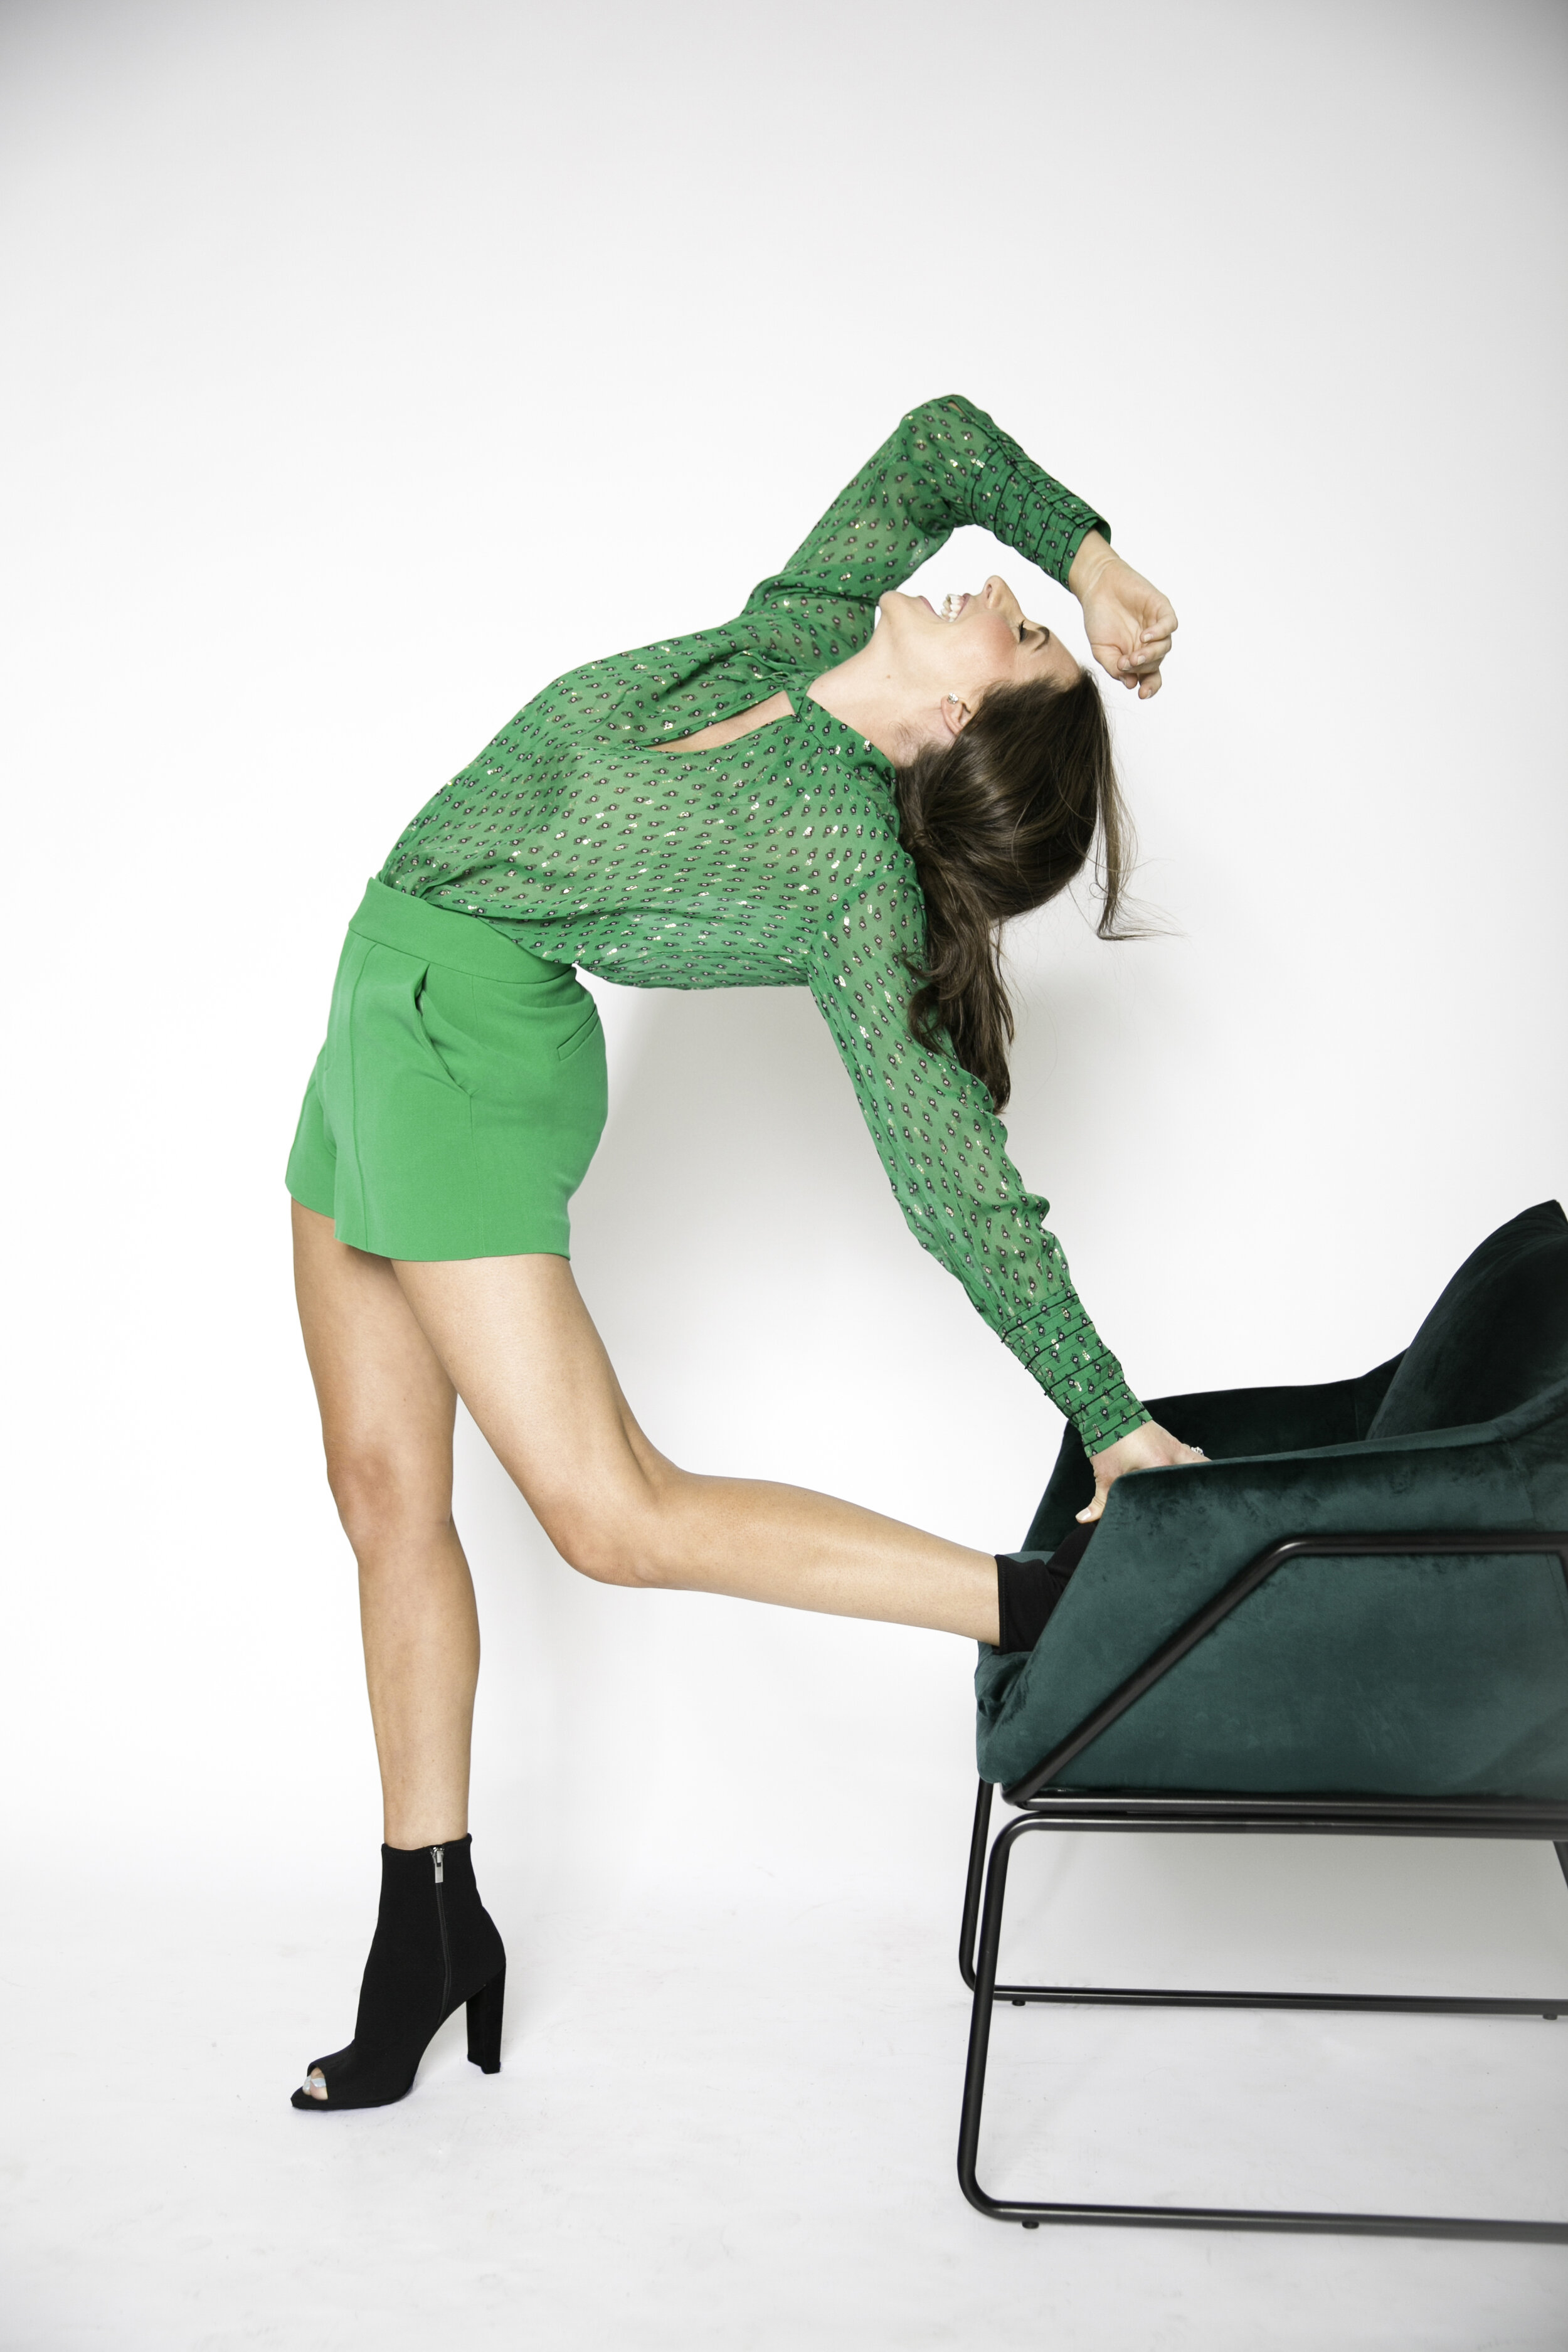 Top ( Green), $275, Shorts, $265; Debra's; 251.343.7463. Booties, $170; The Gallery Shoe Boutique, 251.344.4257.